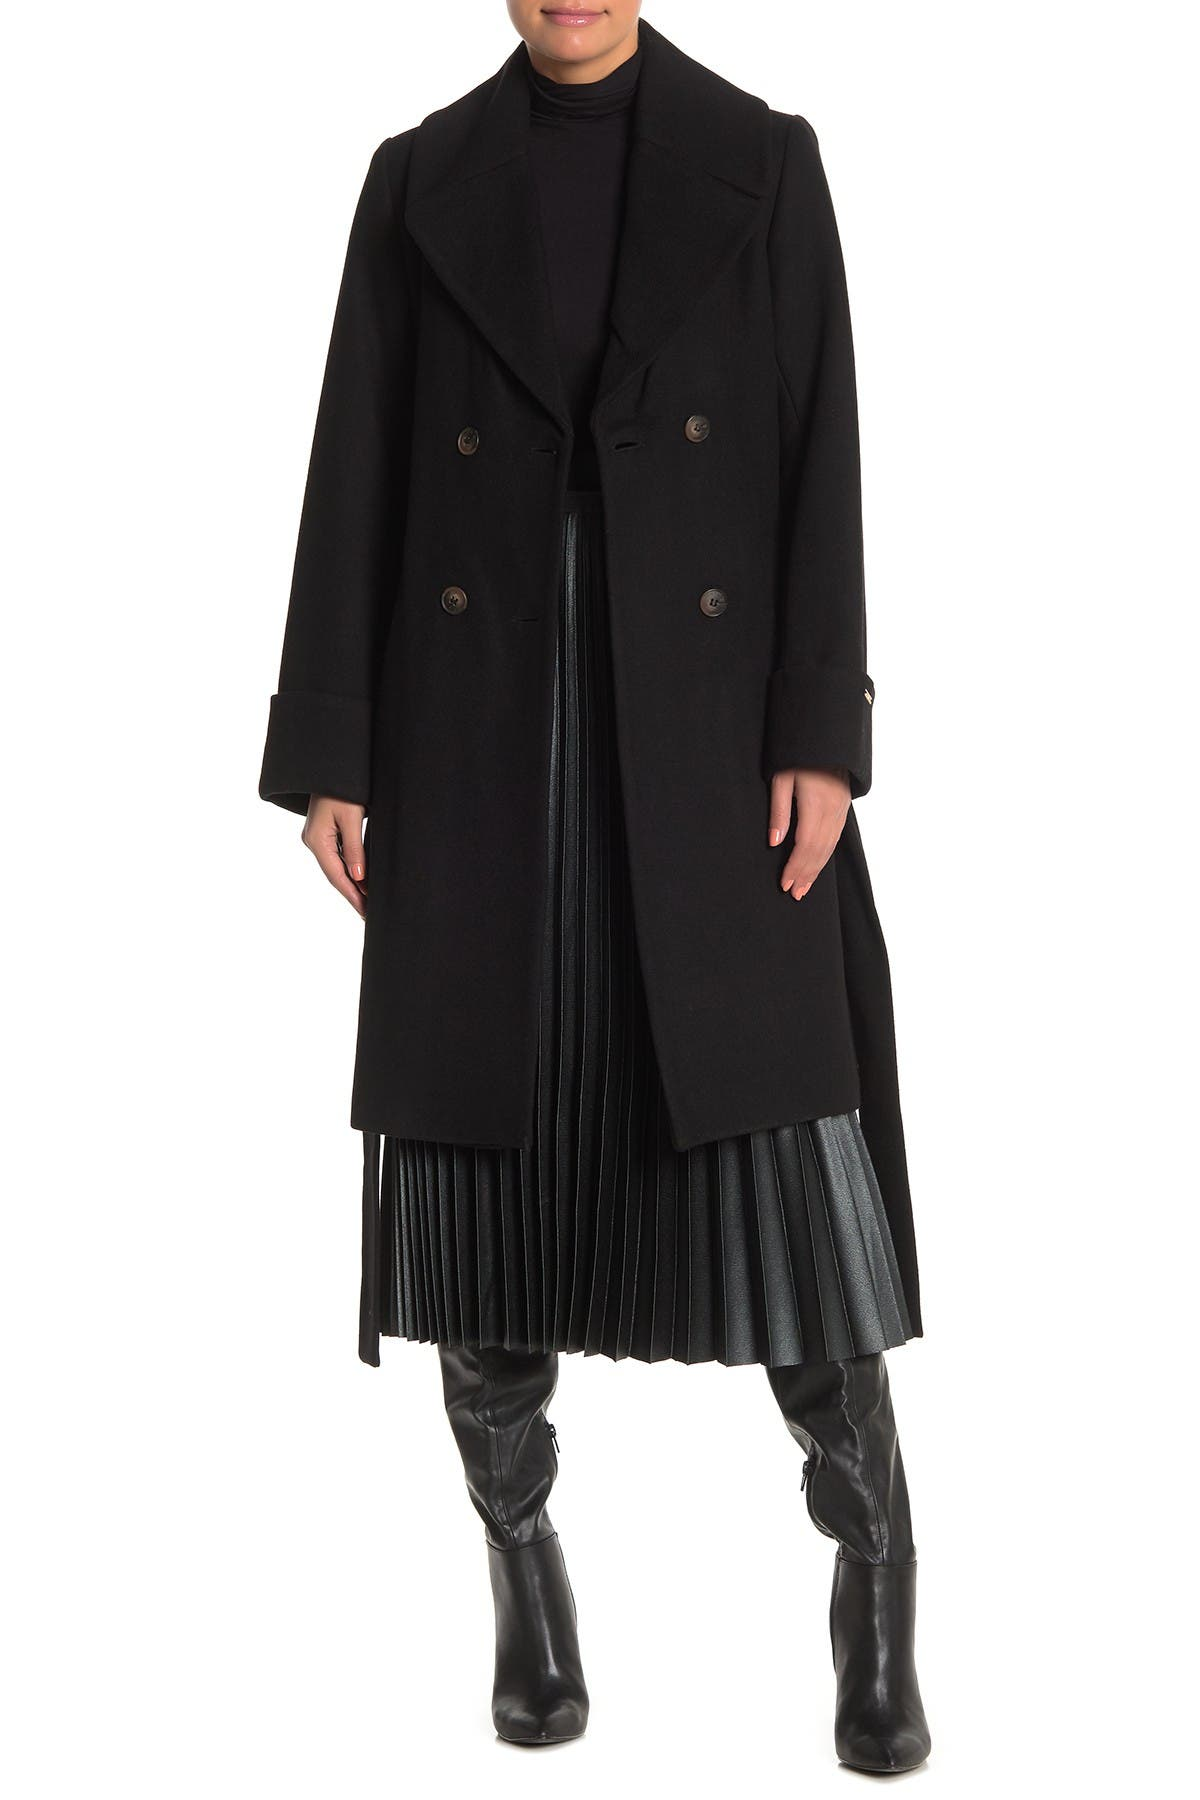 Image of Nine West Belted Double Breasted Wool Blend Coat